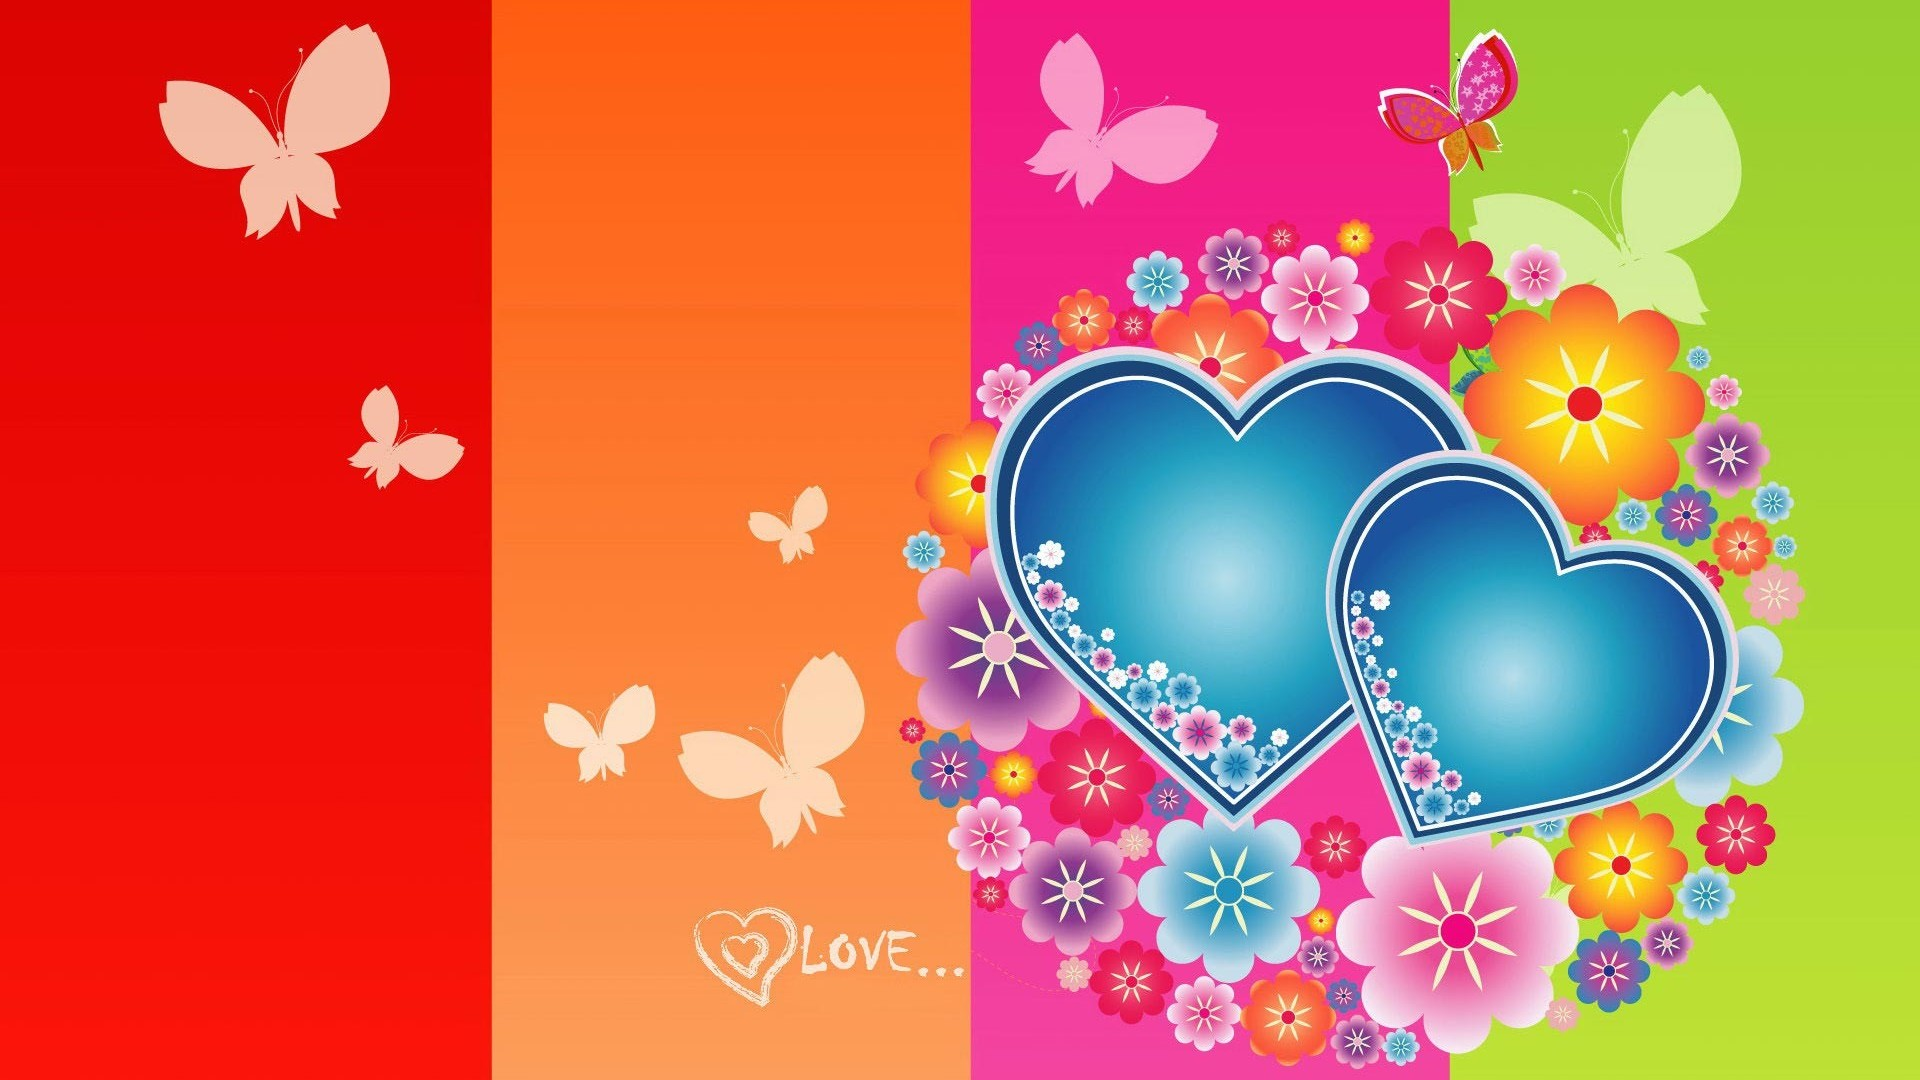 download cute valentines day 1920x1080 hd desktop wallpaper 1920x1080